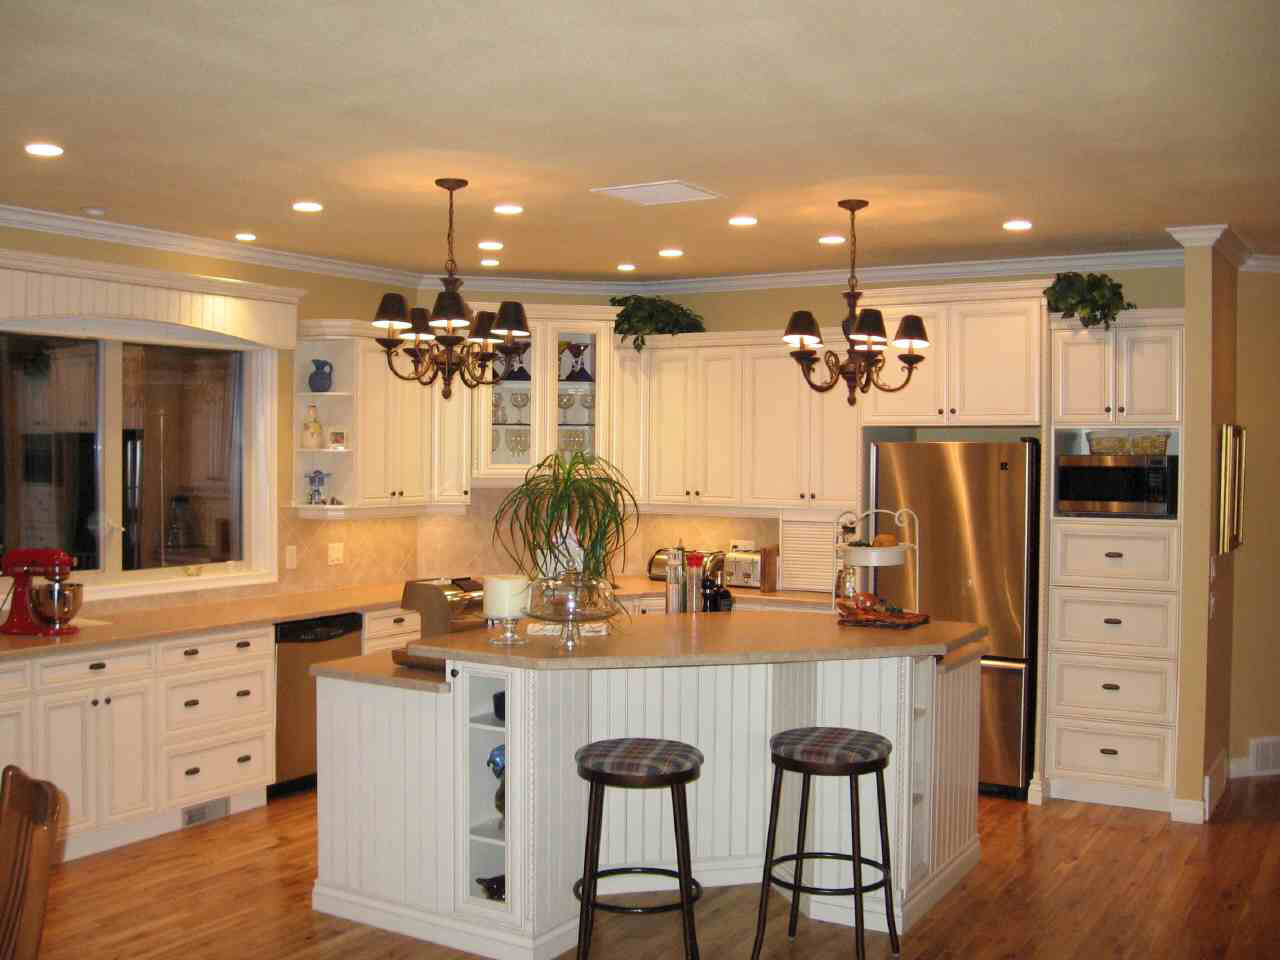 Kitchen Interior Idea photo - 3